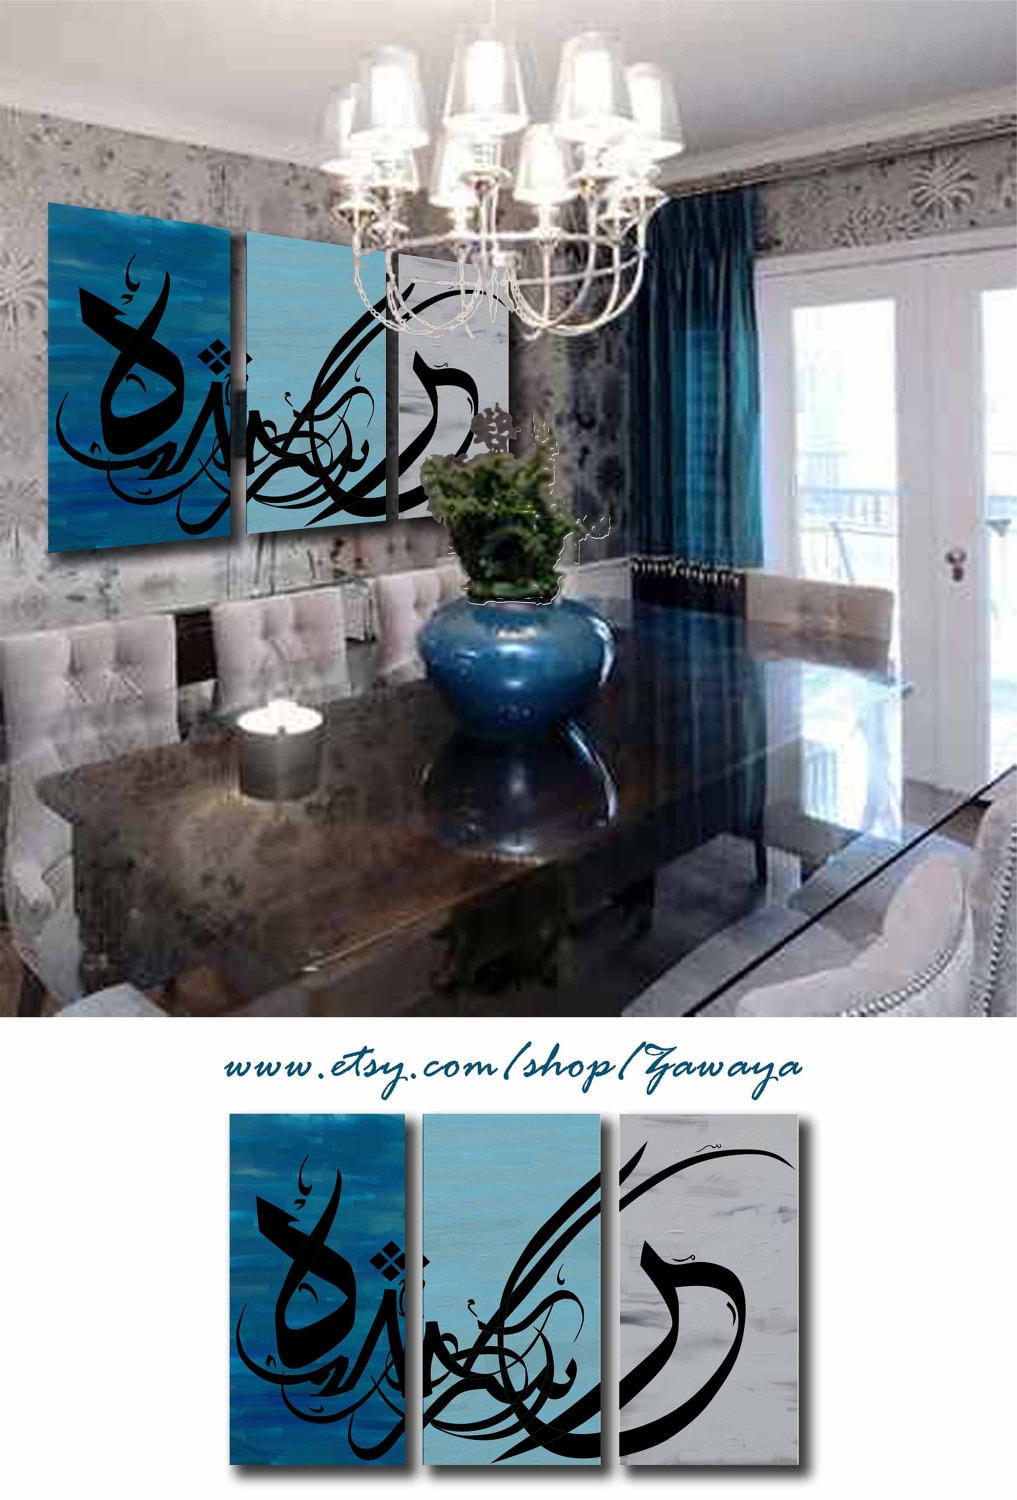 Navy blue gray black painting home decor arabic by Zawaya on Etsy